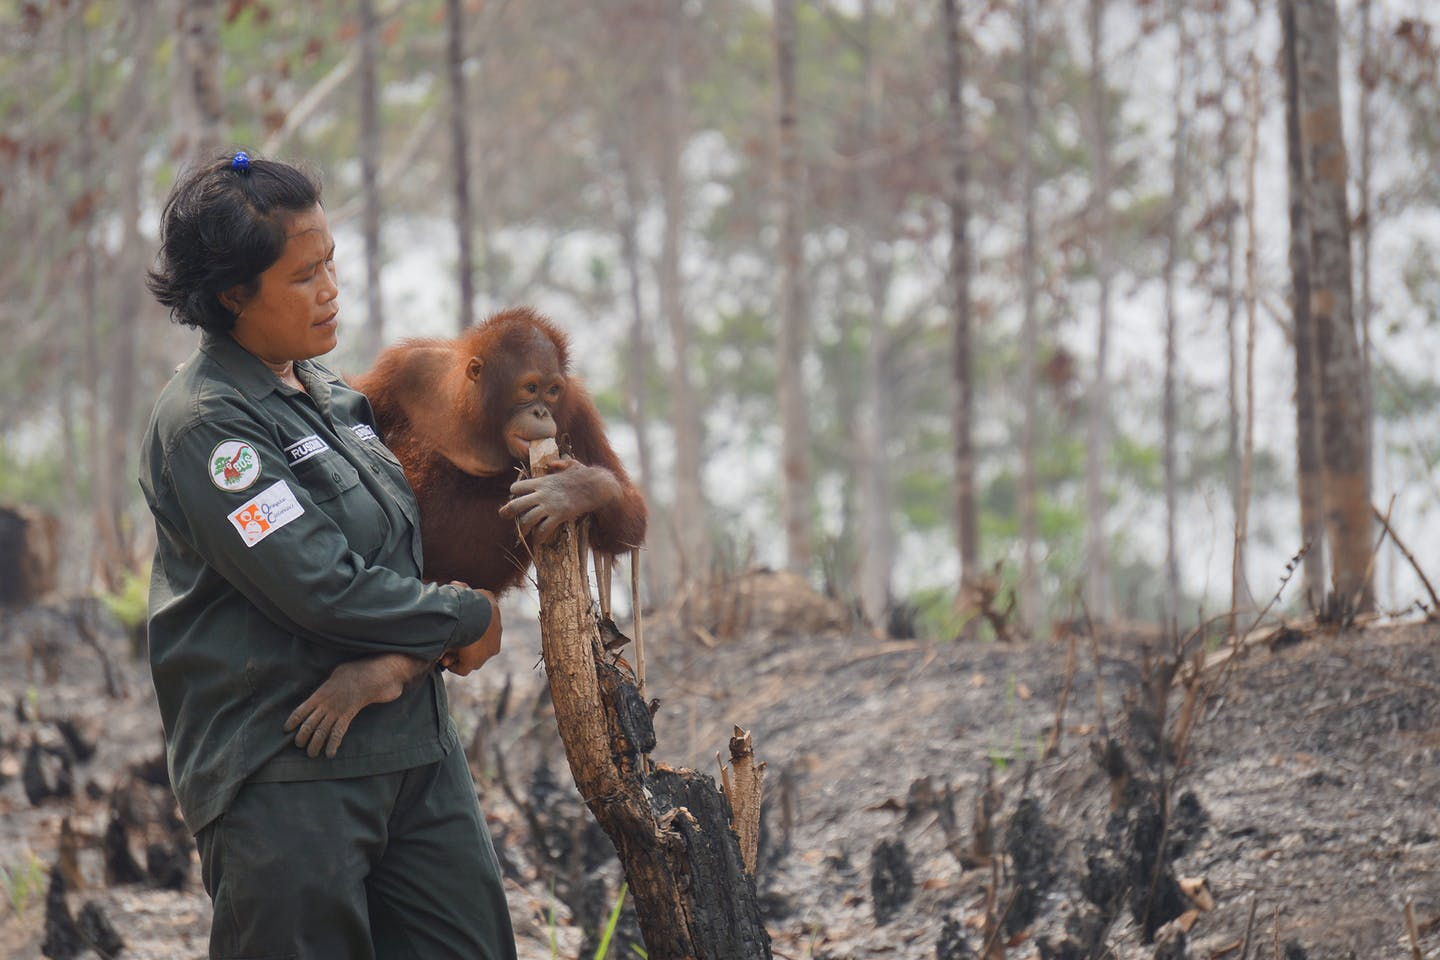 orangutan homes burnt